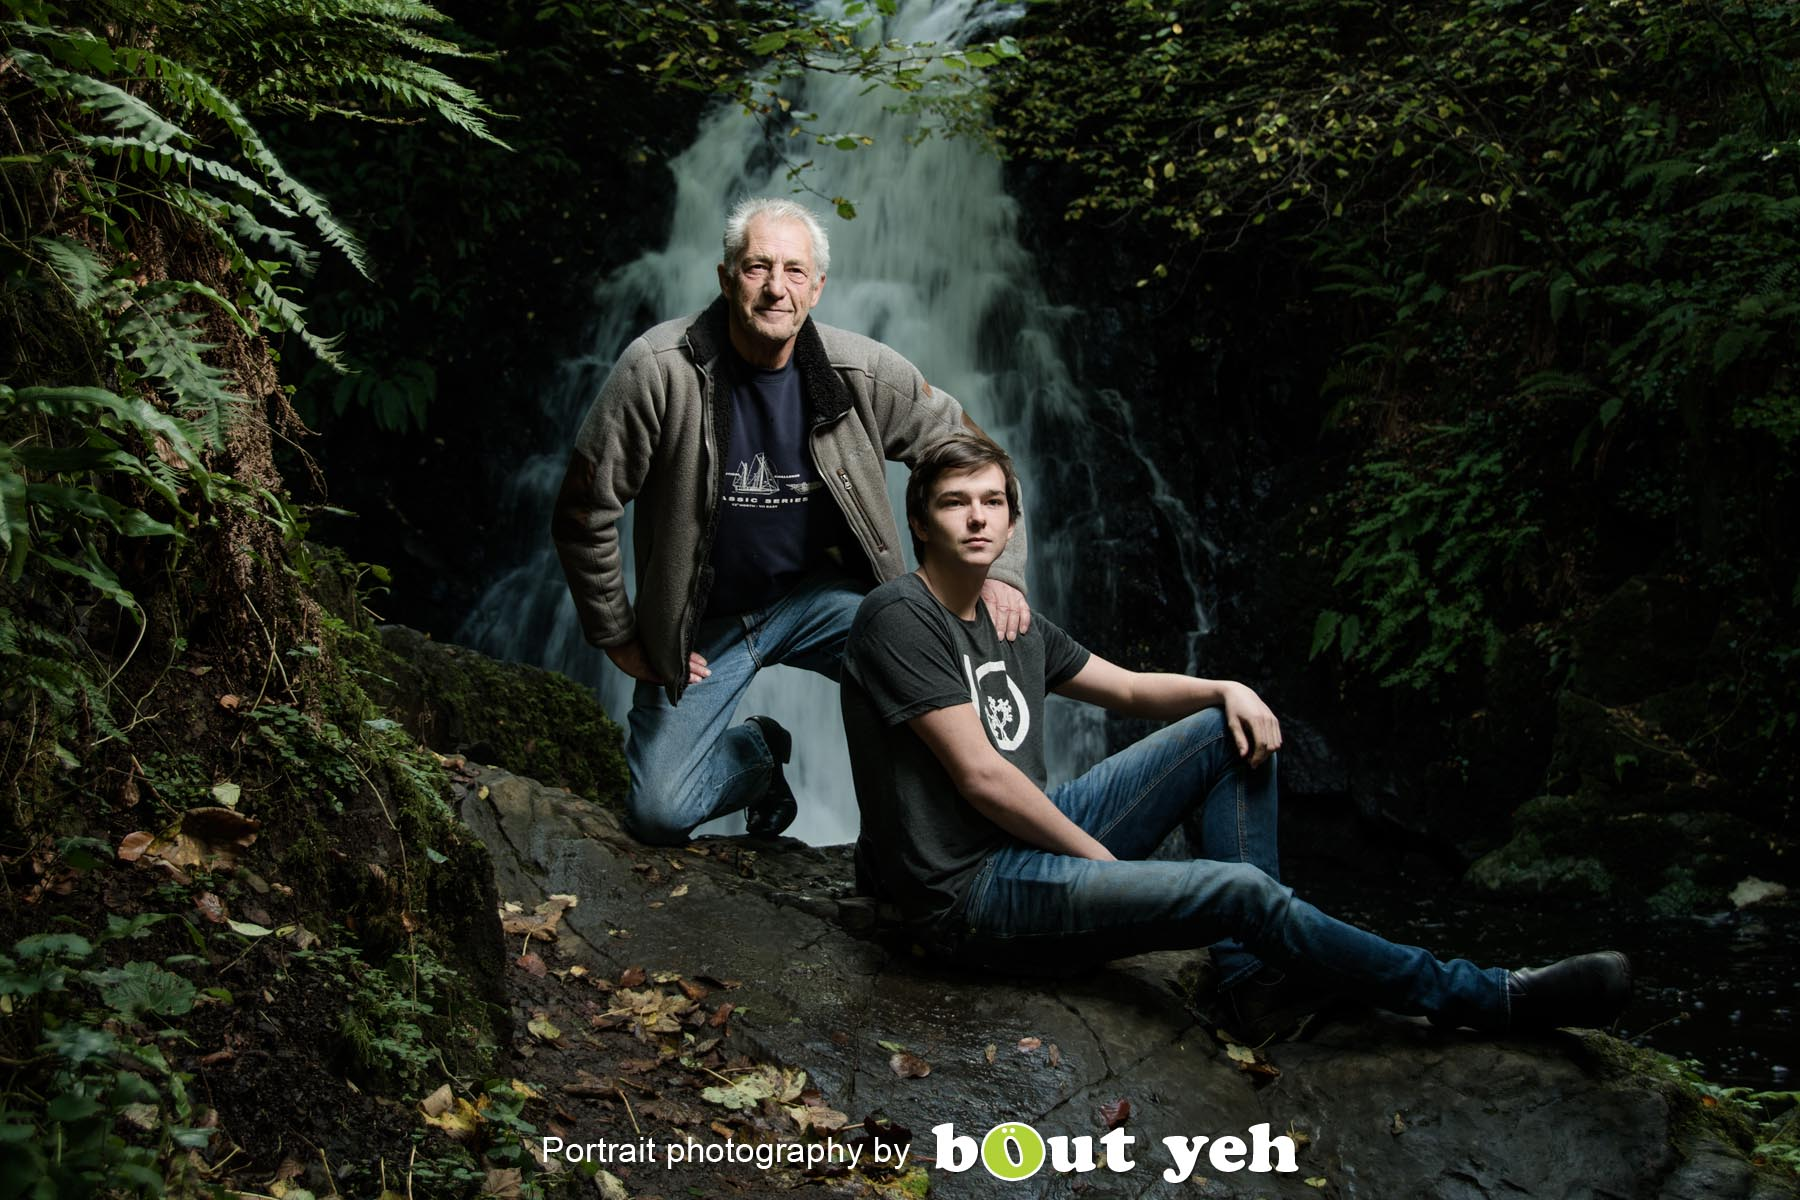 William and William, at Glenoe Waterfall, Northern Ireland - photo 8999.